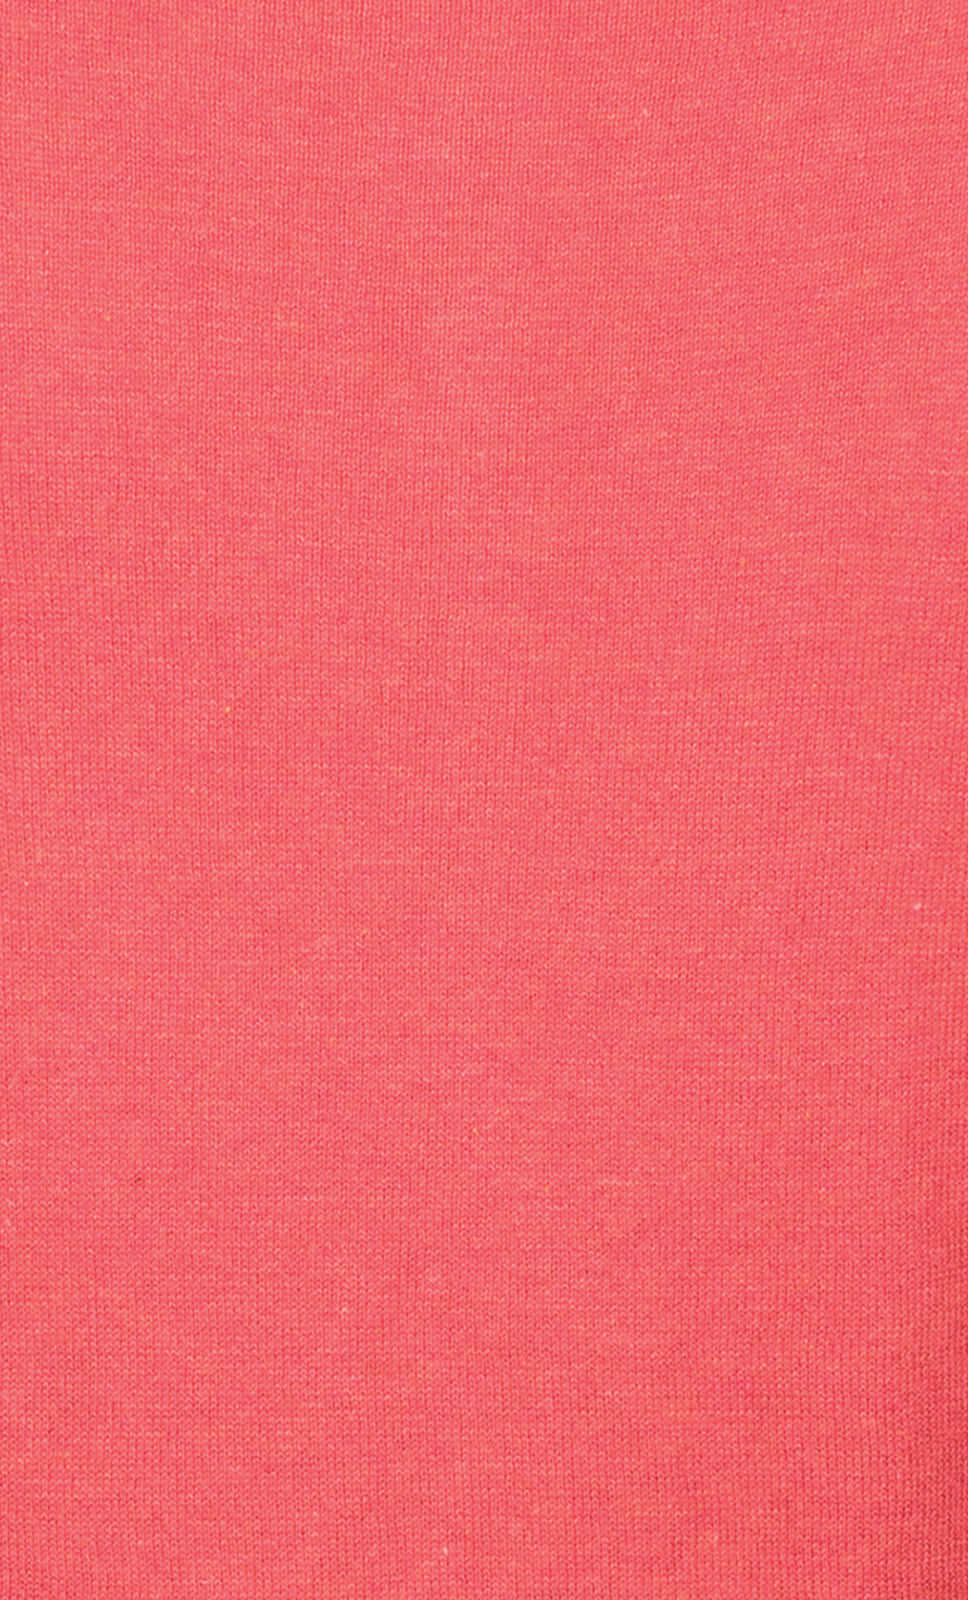 Cocoon-Pink-Coral-